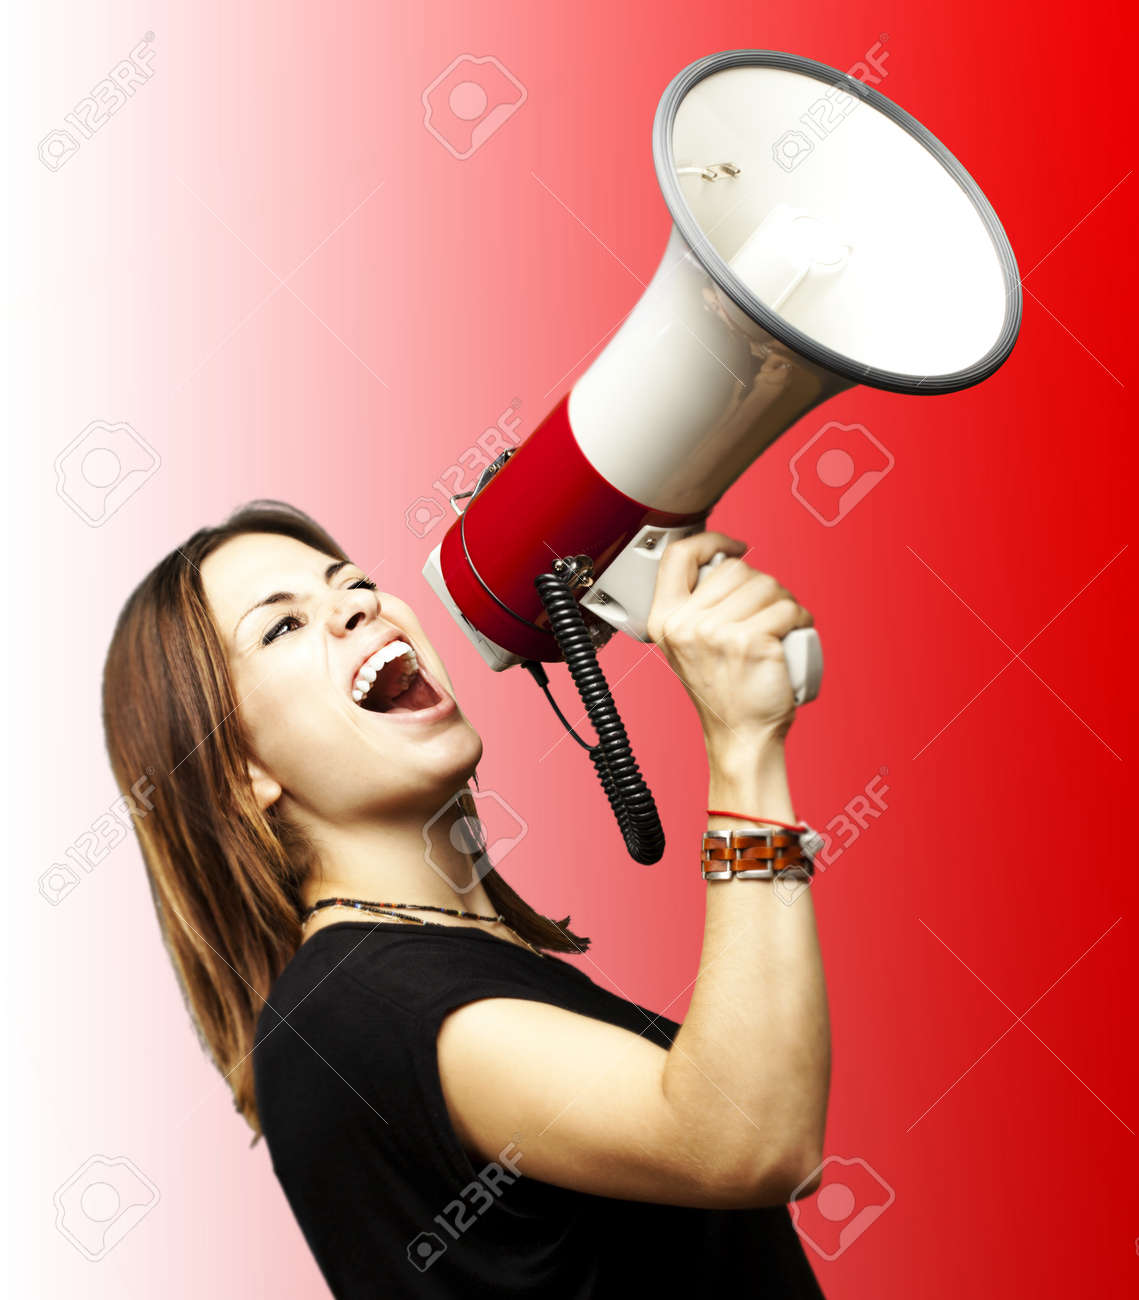 portrait of young girl shouting with megaphone over red background Stock Photo - 12656541